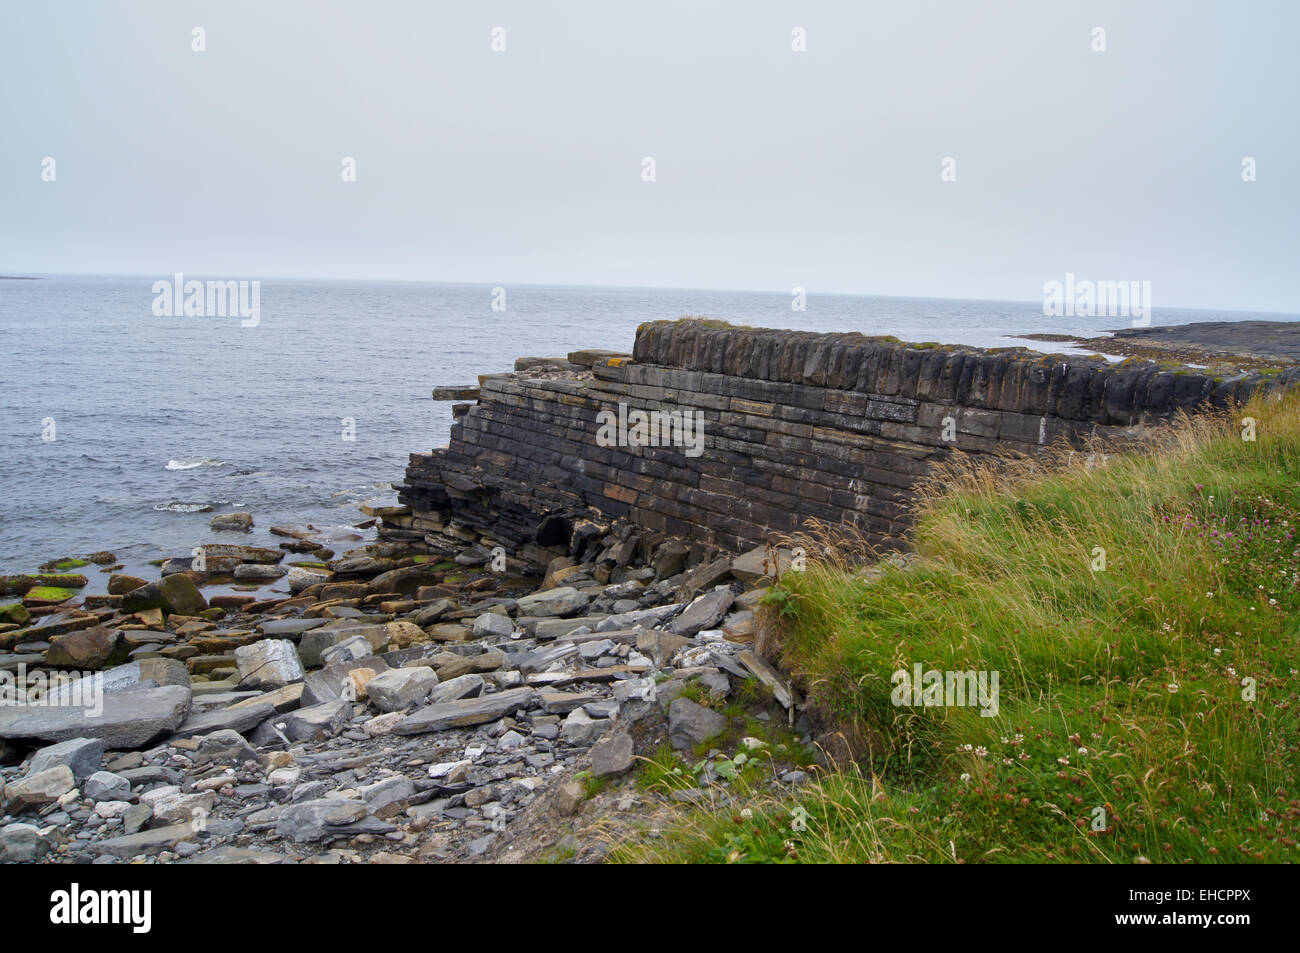 remains-of-thomas-stevensons-breakwater-1863-73-wick-caithness-scotland-EHCPPX.jpg